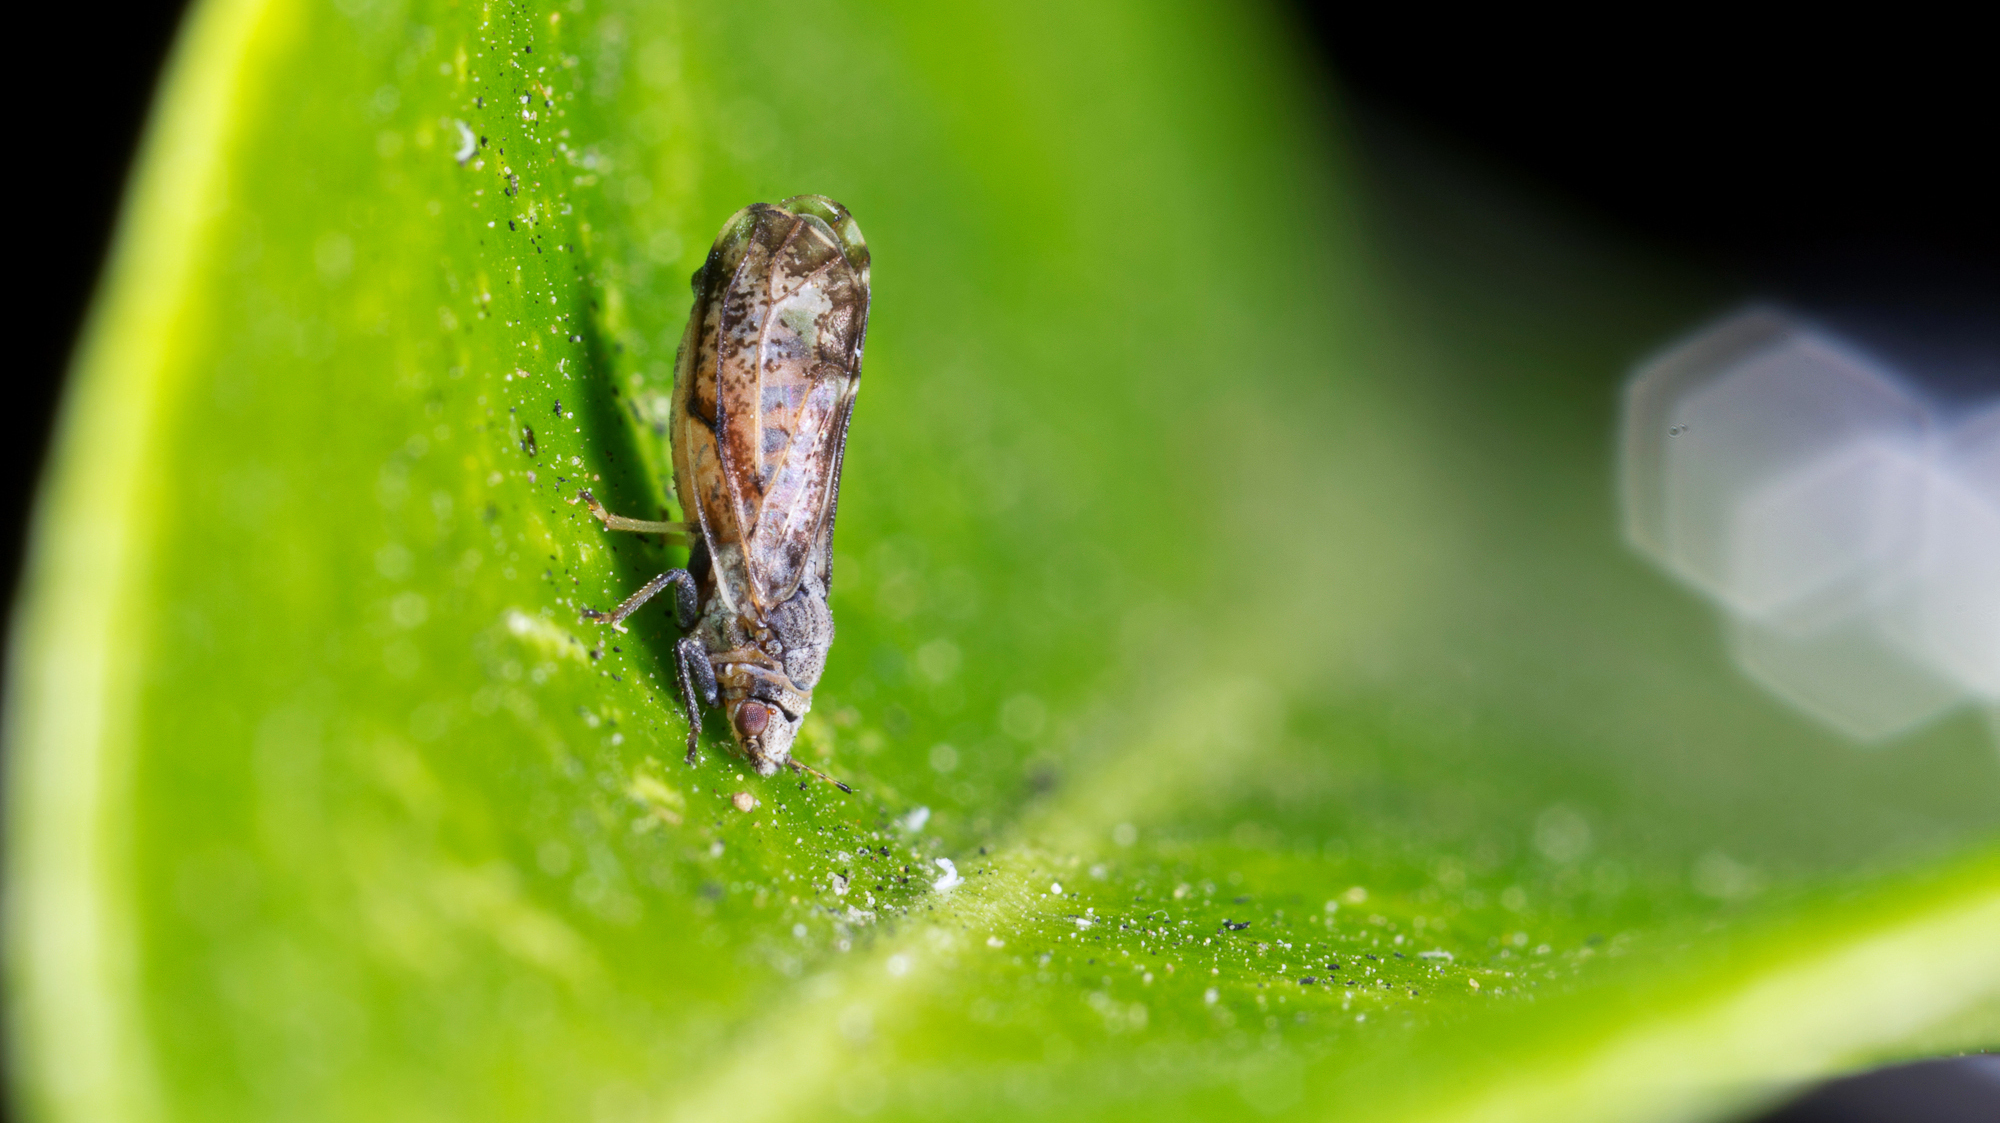 The parasitic wasp Tamarixia radiata is the natural enemy of the invasive Asian citrus psyllid. Photo: Mike Lewis/Center for Invasive Species Research, UC Riverside